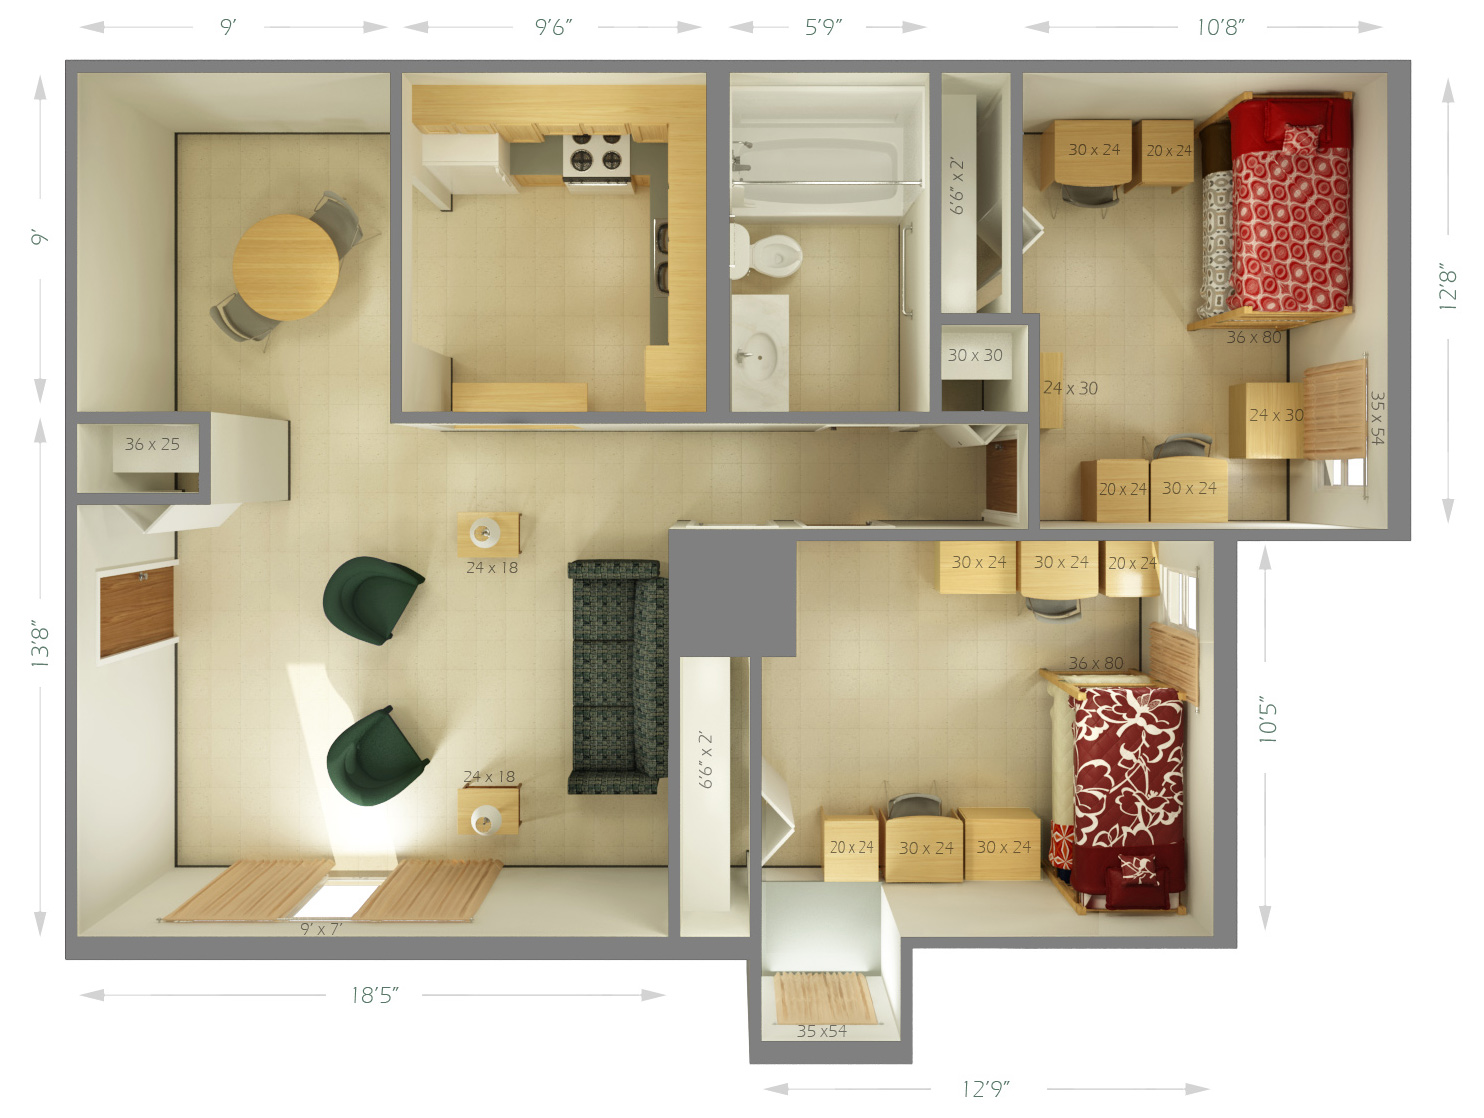 University housing cougar village room dimensions siue - What size tv to get for living room ...